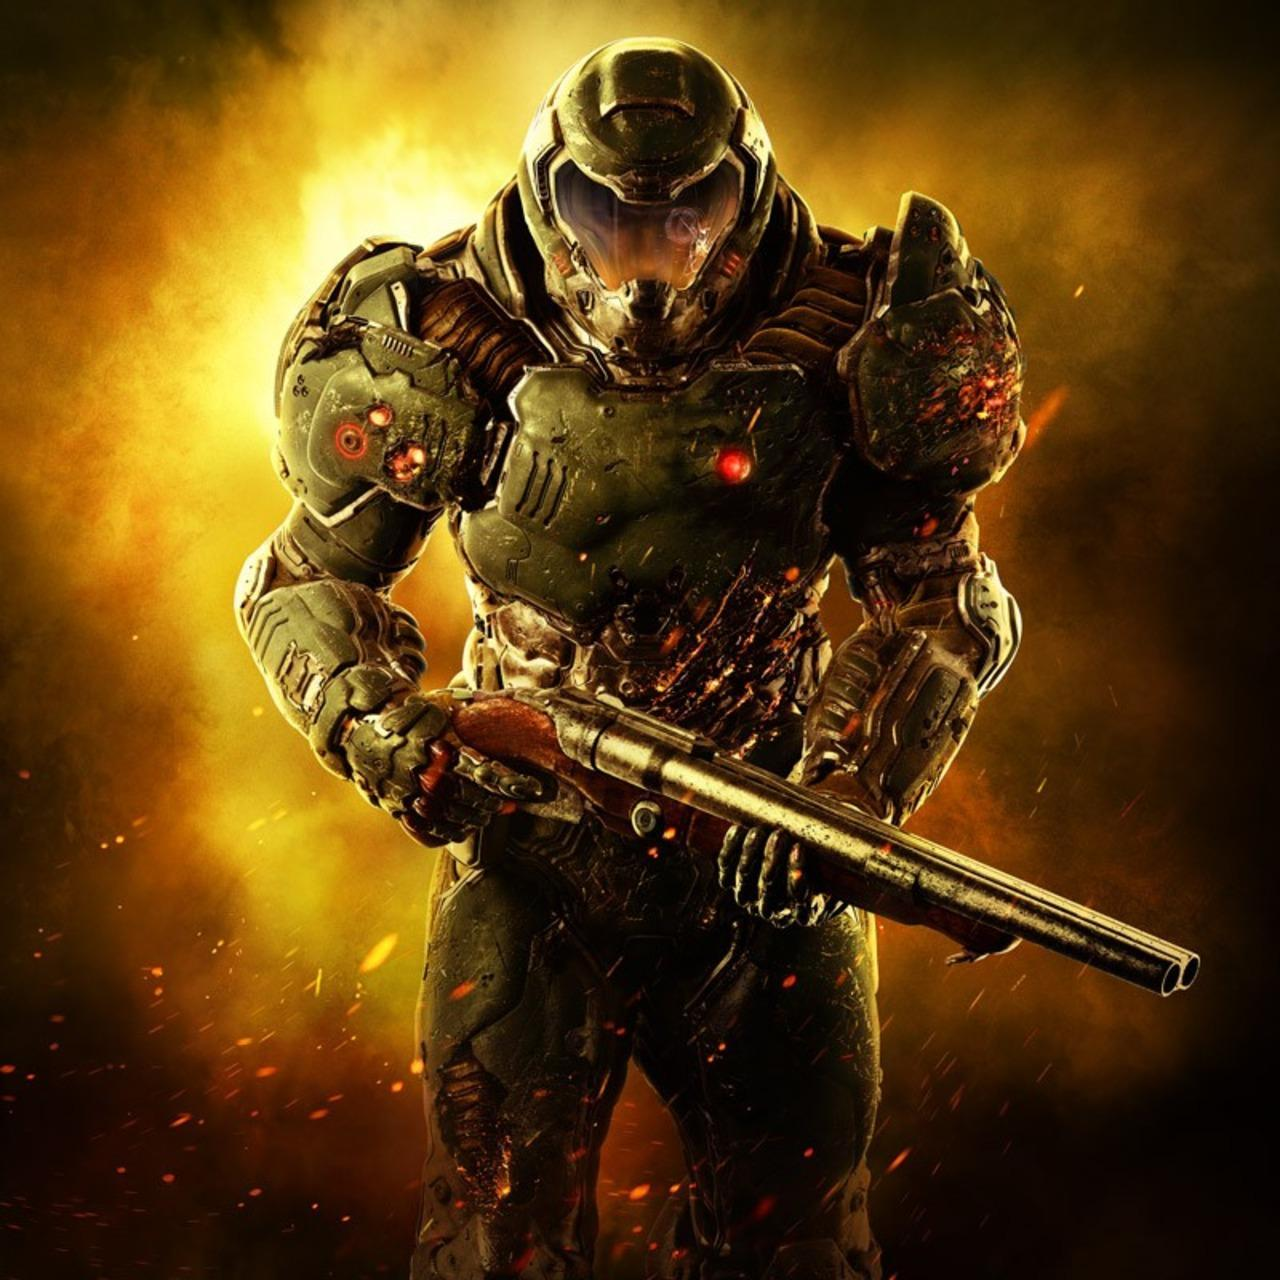 Are you Doomguy or not?